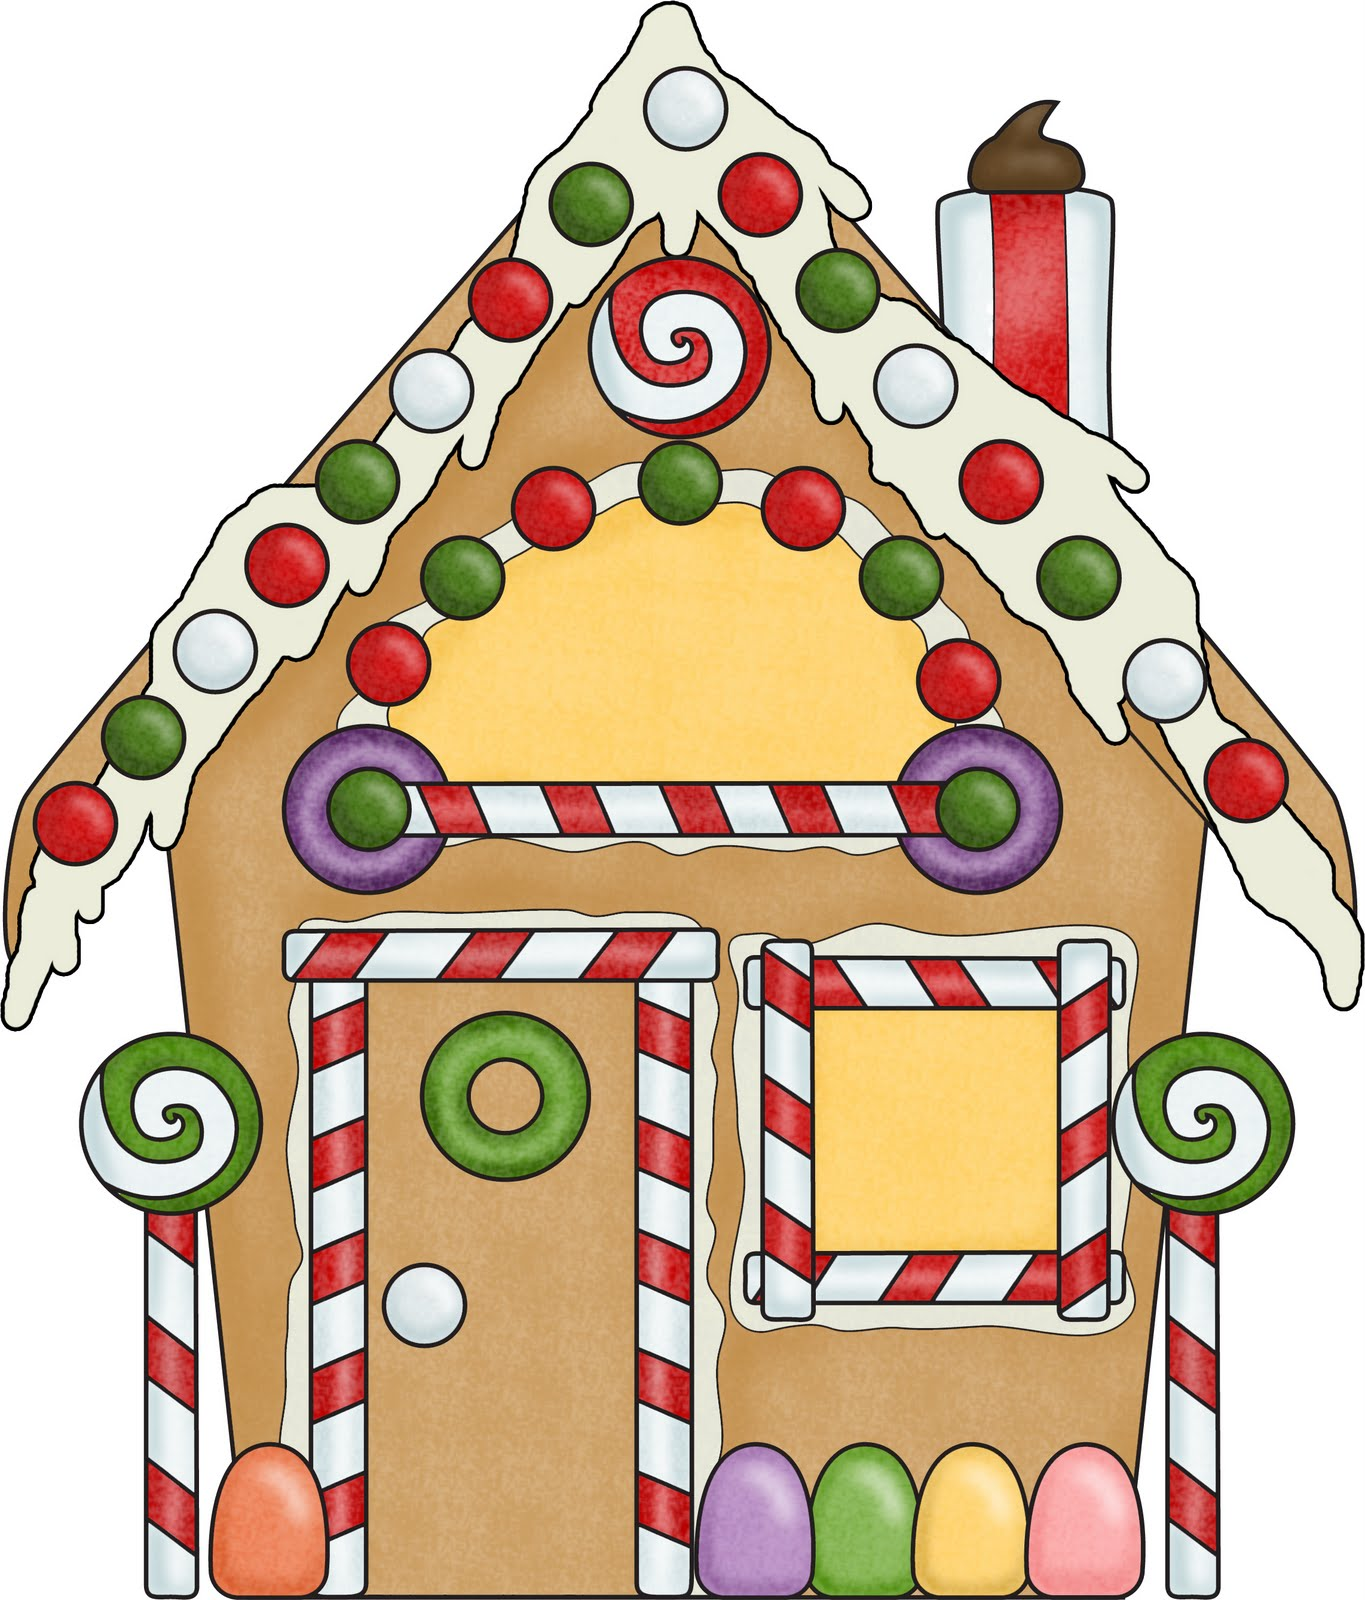 Candy Cane clipart gingerbread house candy ClipartAndScrap Art Clip clip house